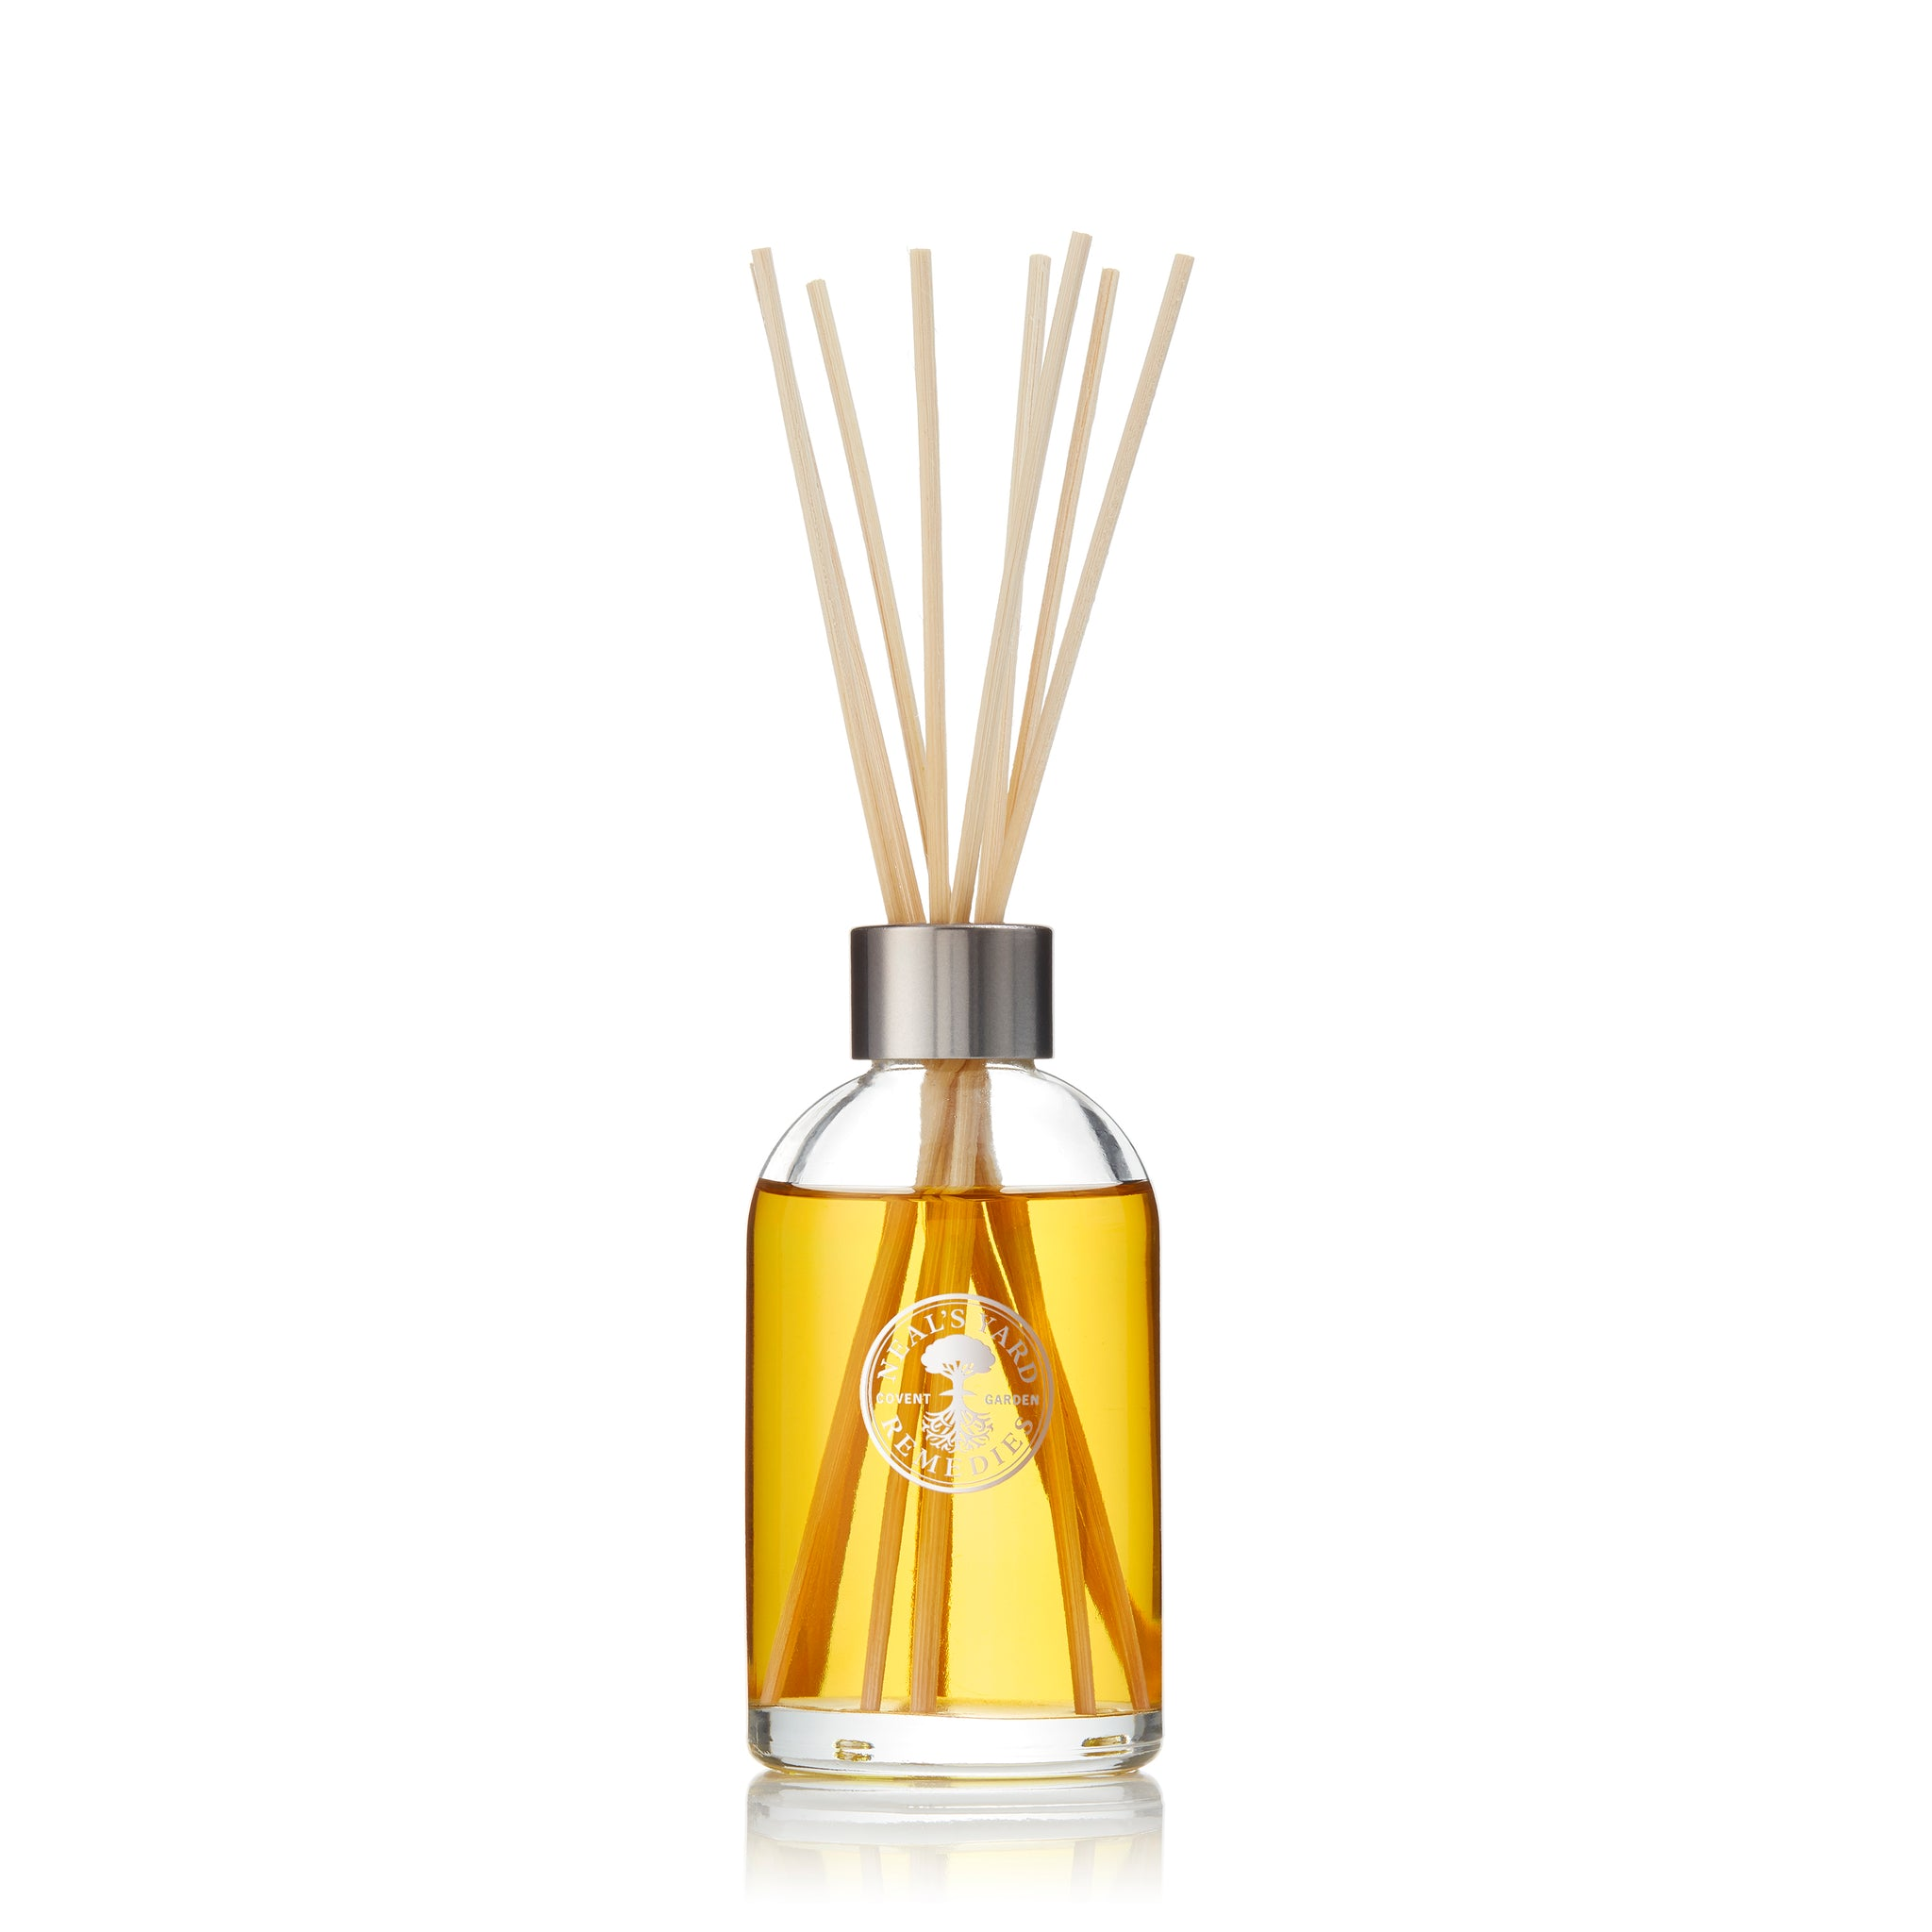 Organic Aromatherapy Reed Diffuser - Calming by Neal's Yard Remedies